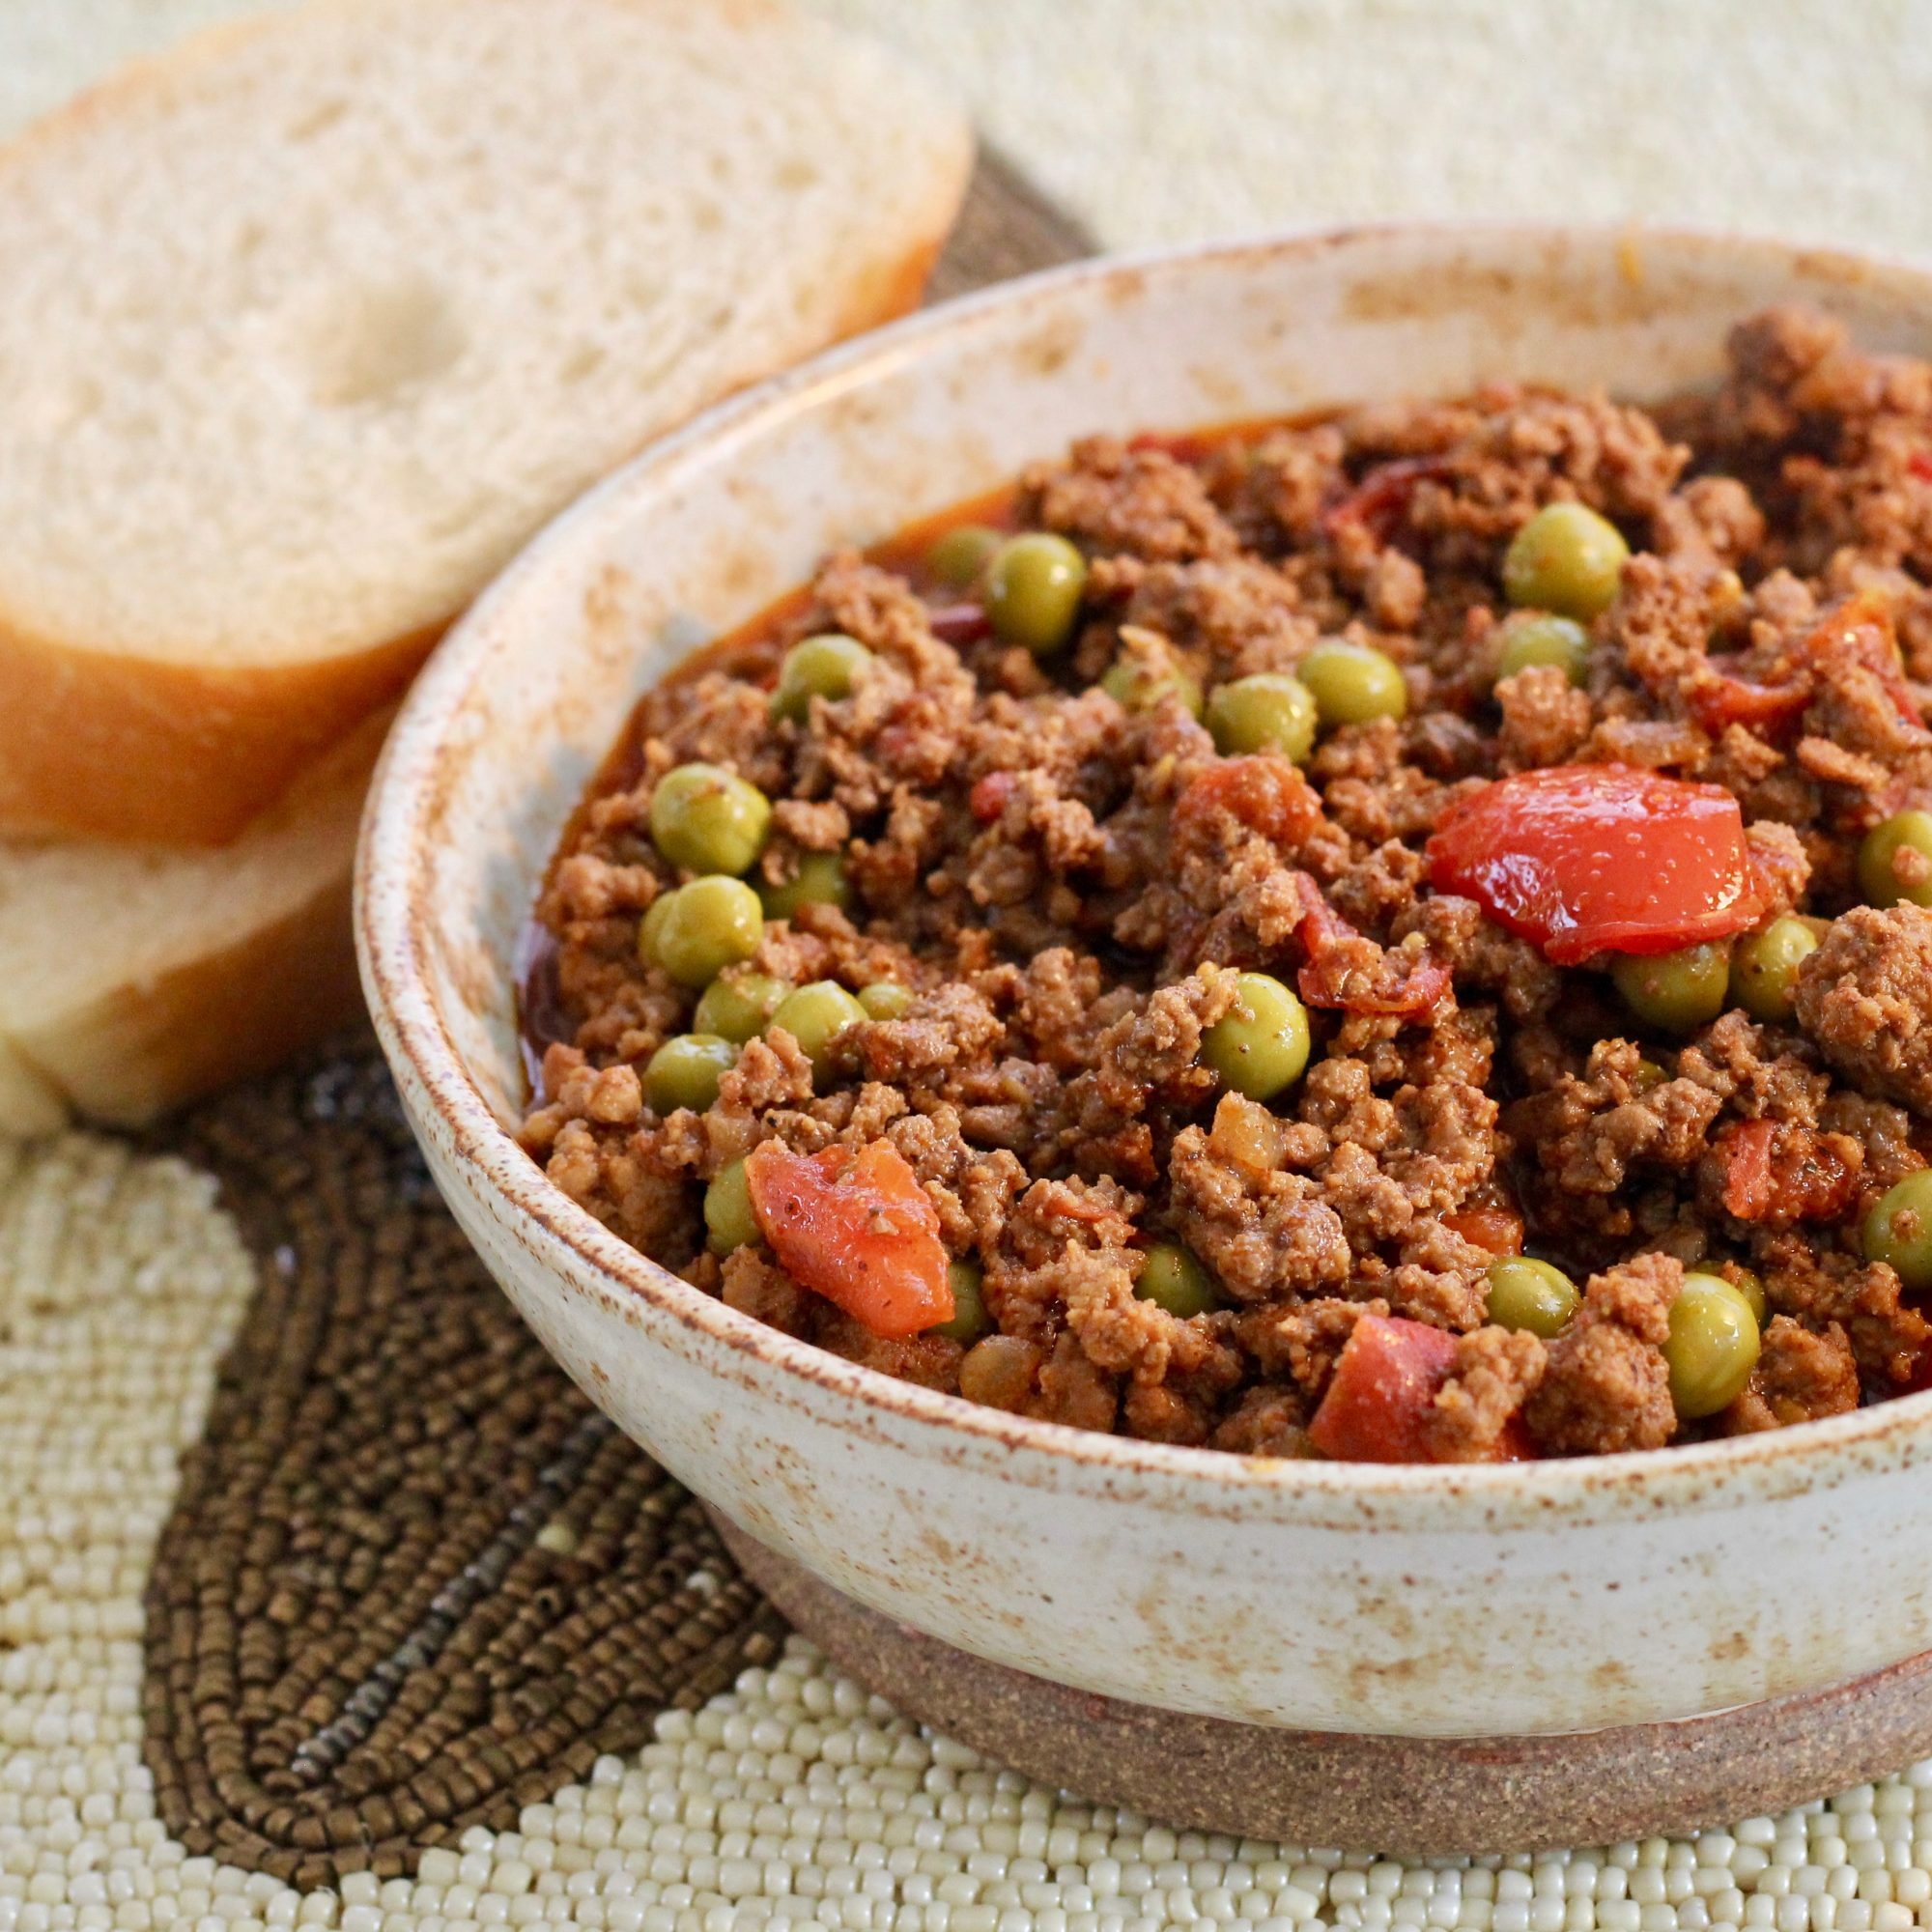 Pakistani Ground Beef Curry in a grey bowl